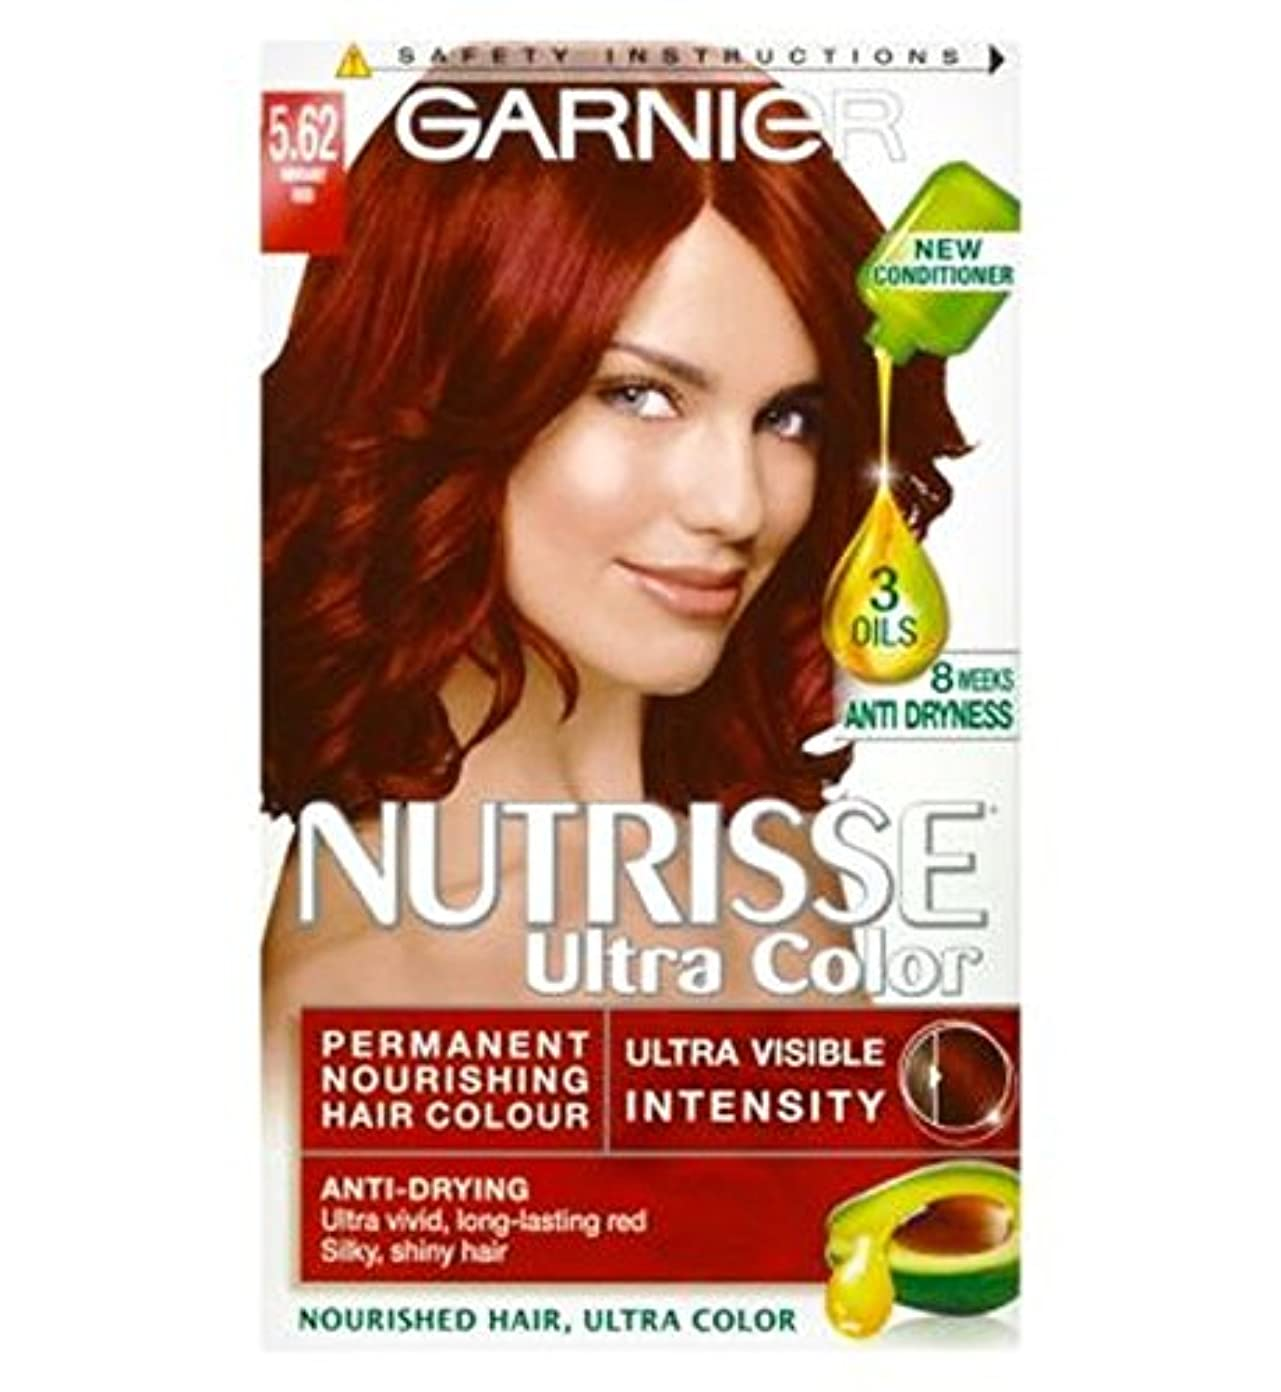 救急車コマースしなやかなガルニエNutrisse超永久色5.62活気のある赤 (Garnier) (x2) - Garnier Nutrisse Ultra Permanent Colour 5.62 Vibrant Red (Pack of...